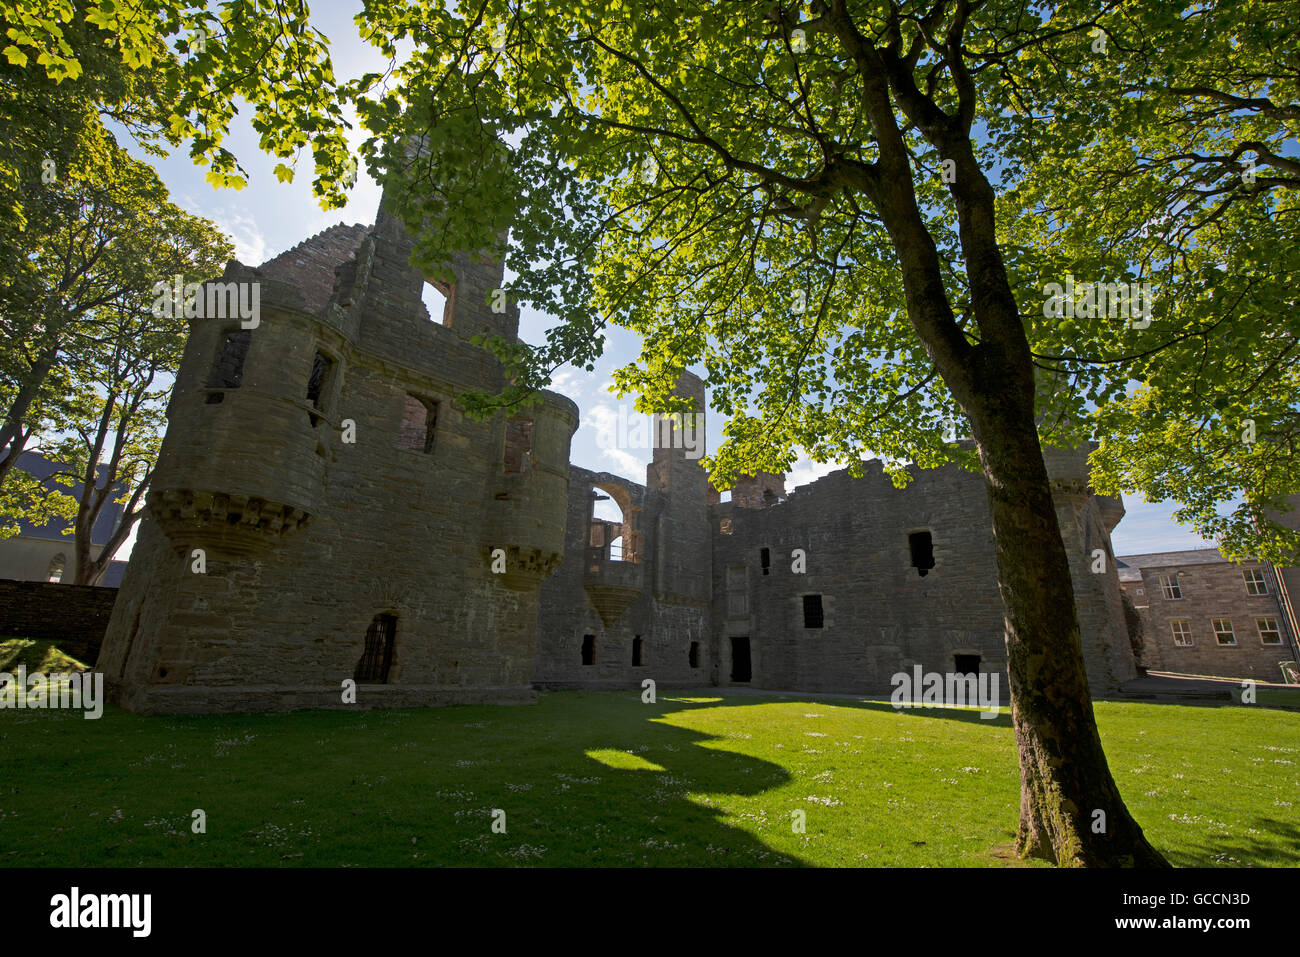 The Ruins of the Earls Palace in Kirkwall Orkney Isles. Scotland.UK.  SCO 10,587. - Stock Image